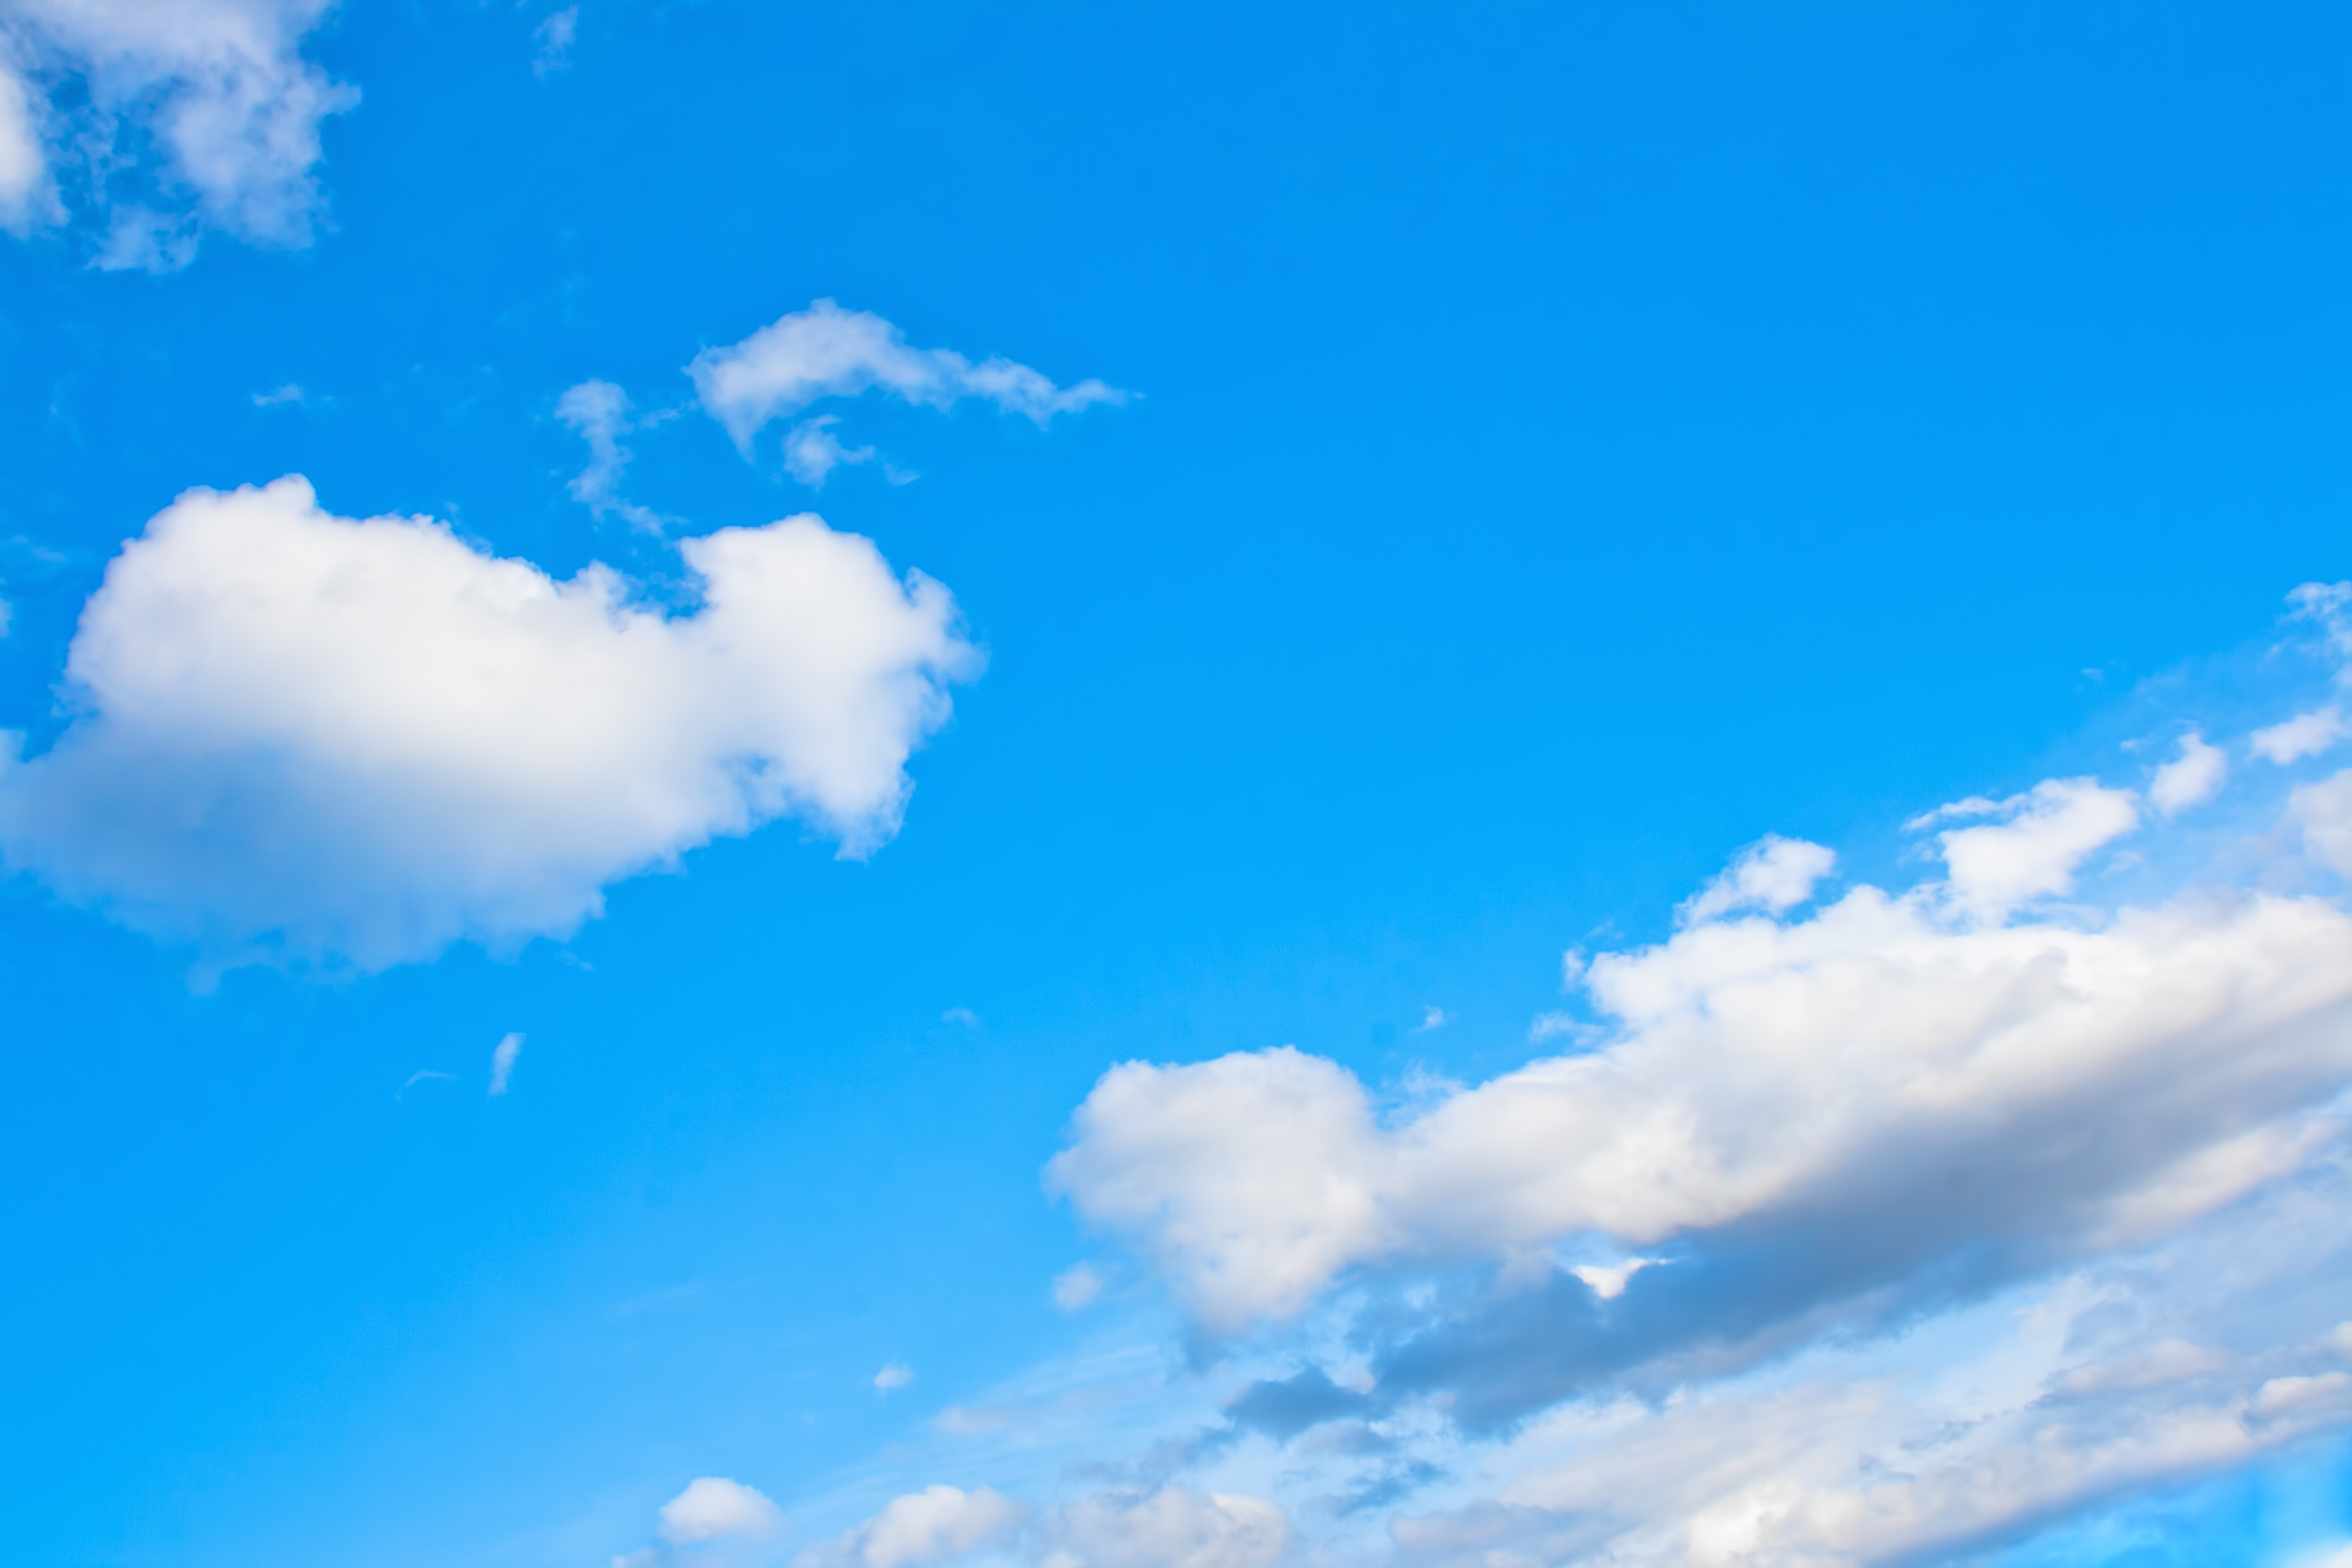 blue sky, Blue, Bright, Cloud, Nature, HQ Photo